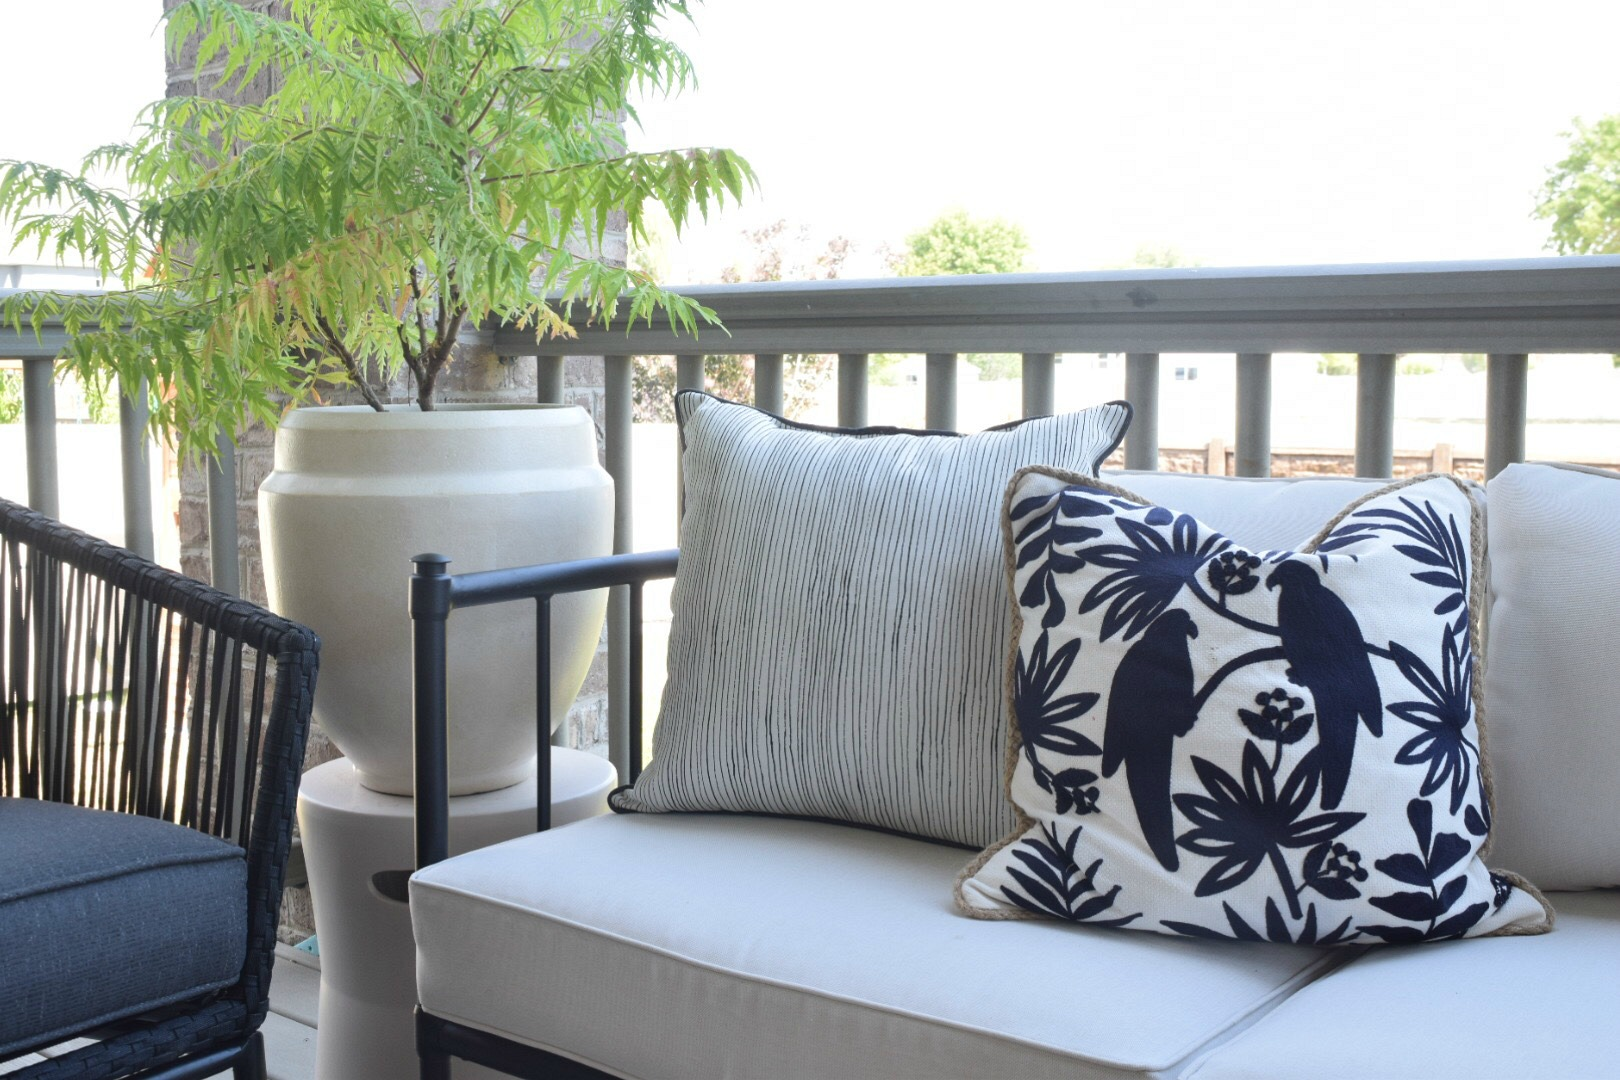 Hanging Outdoor Chairs Outdoor Patio And Living Space With Hanging Chair Nesting With Grace